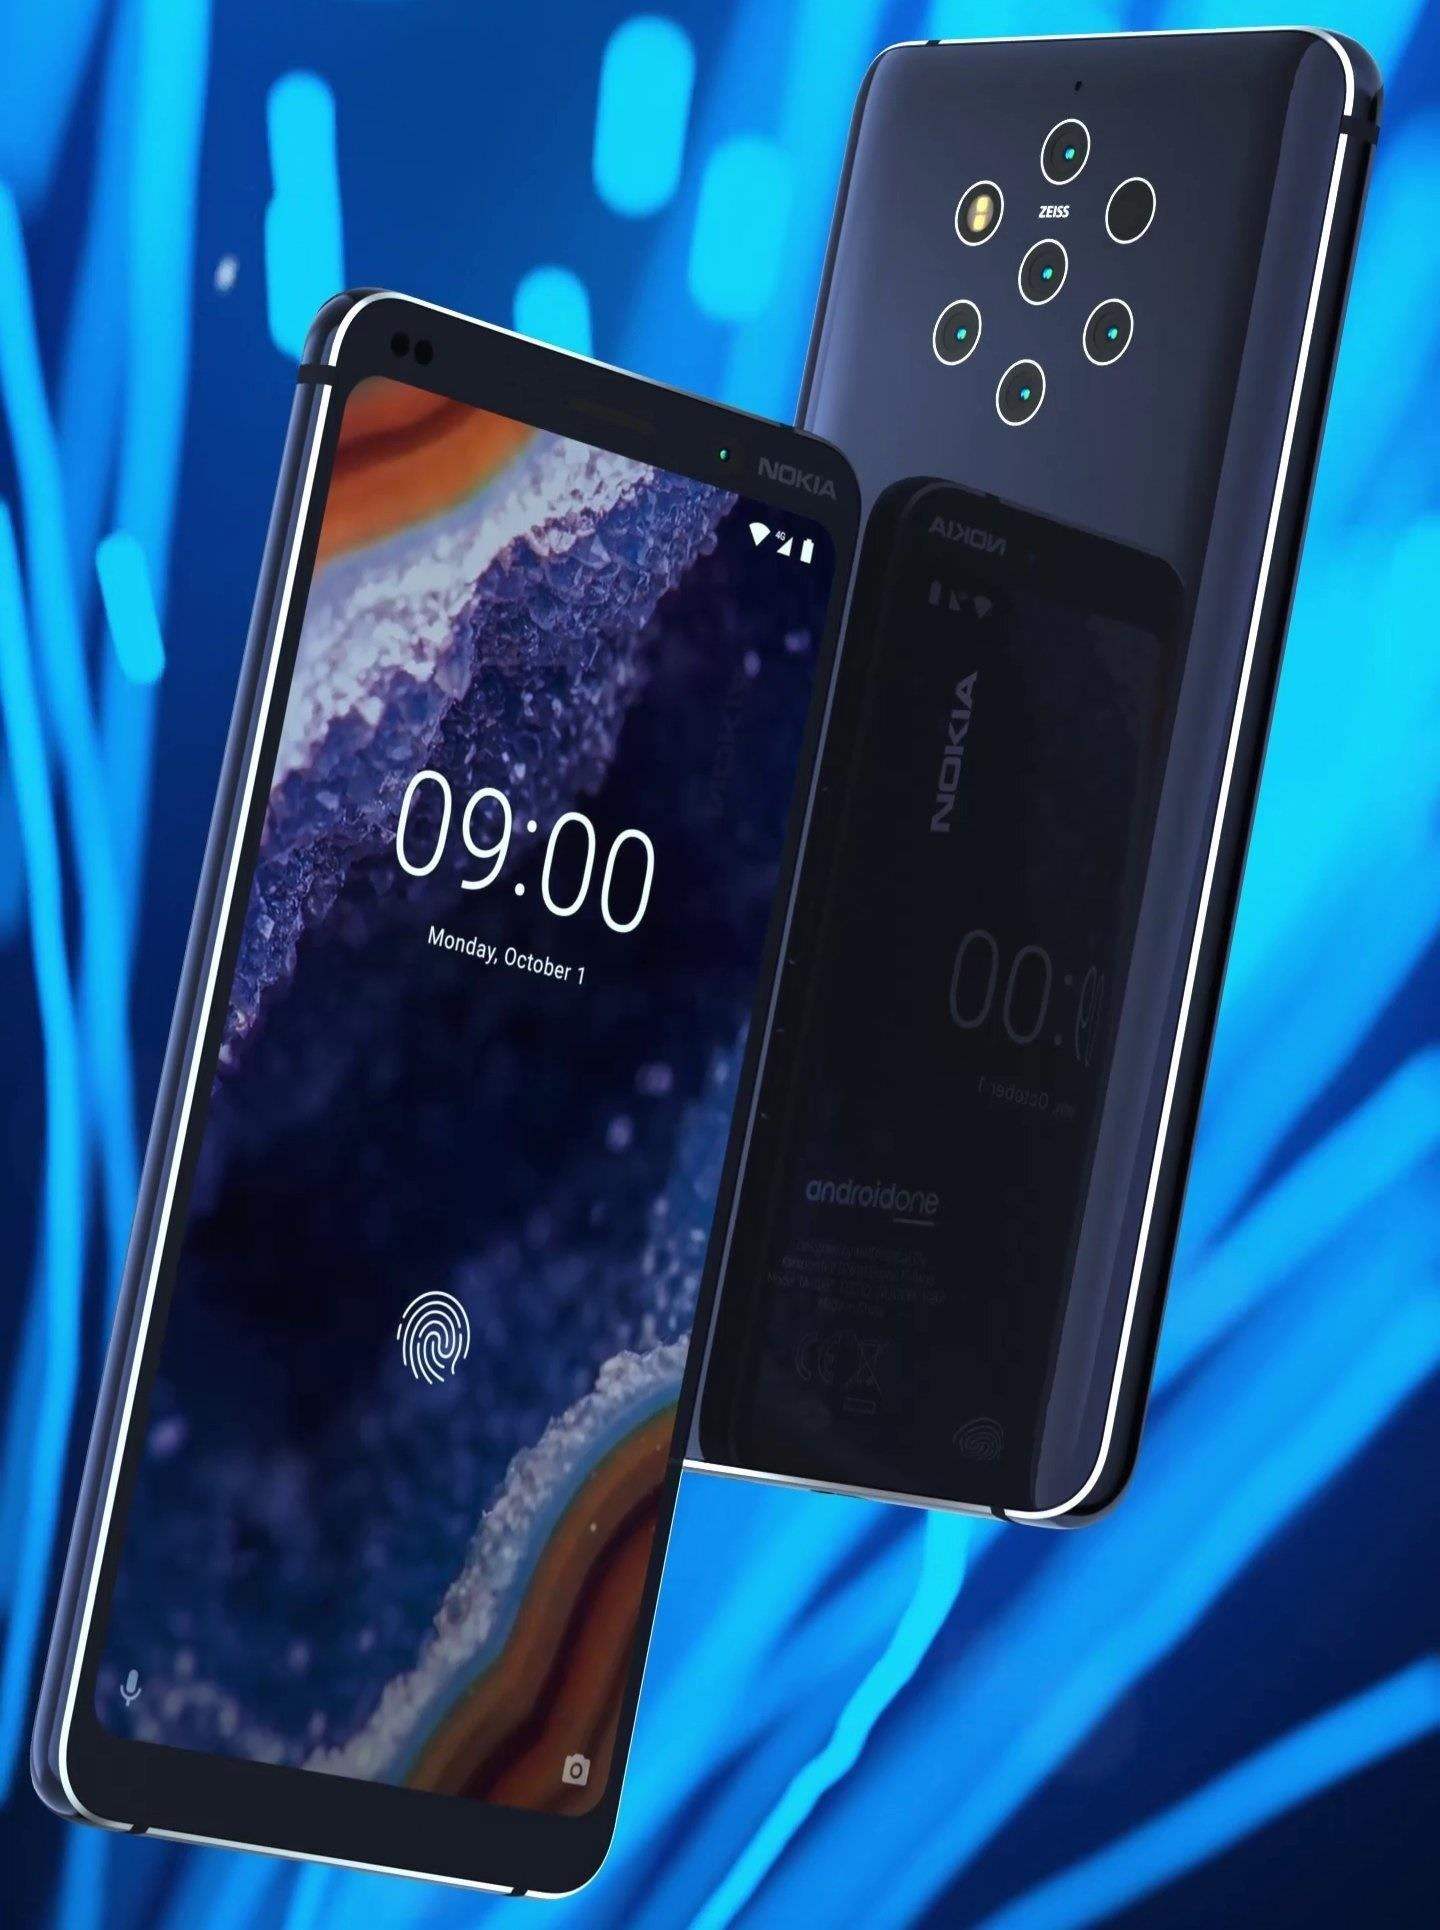 Everything We Know About the Nokia 9 PureView